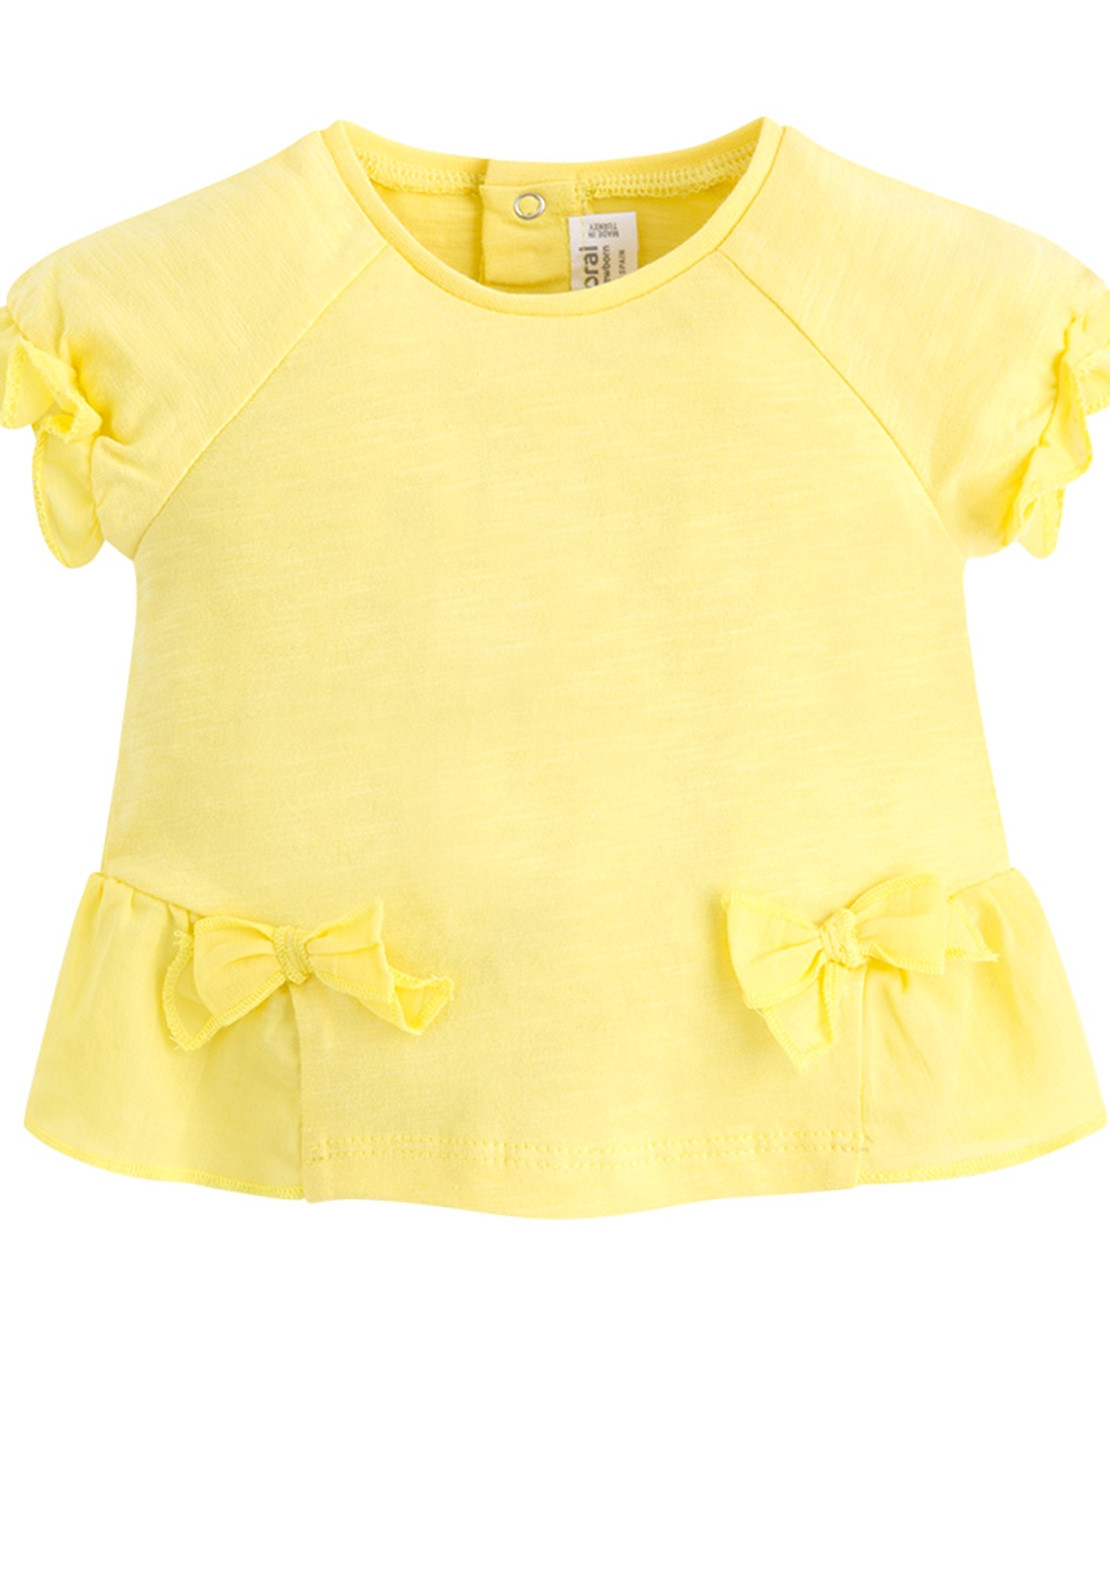 efdf4229b1ef62 Mayoral Baby Girls Bow Frill Top